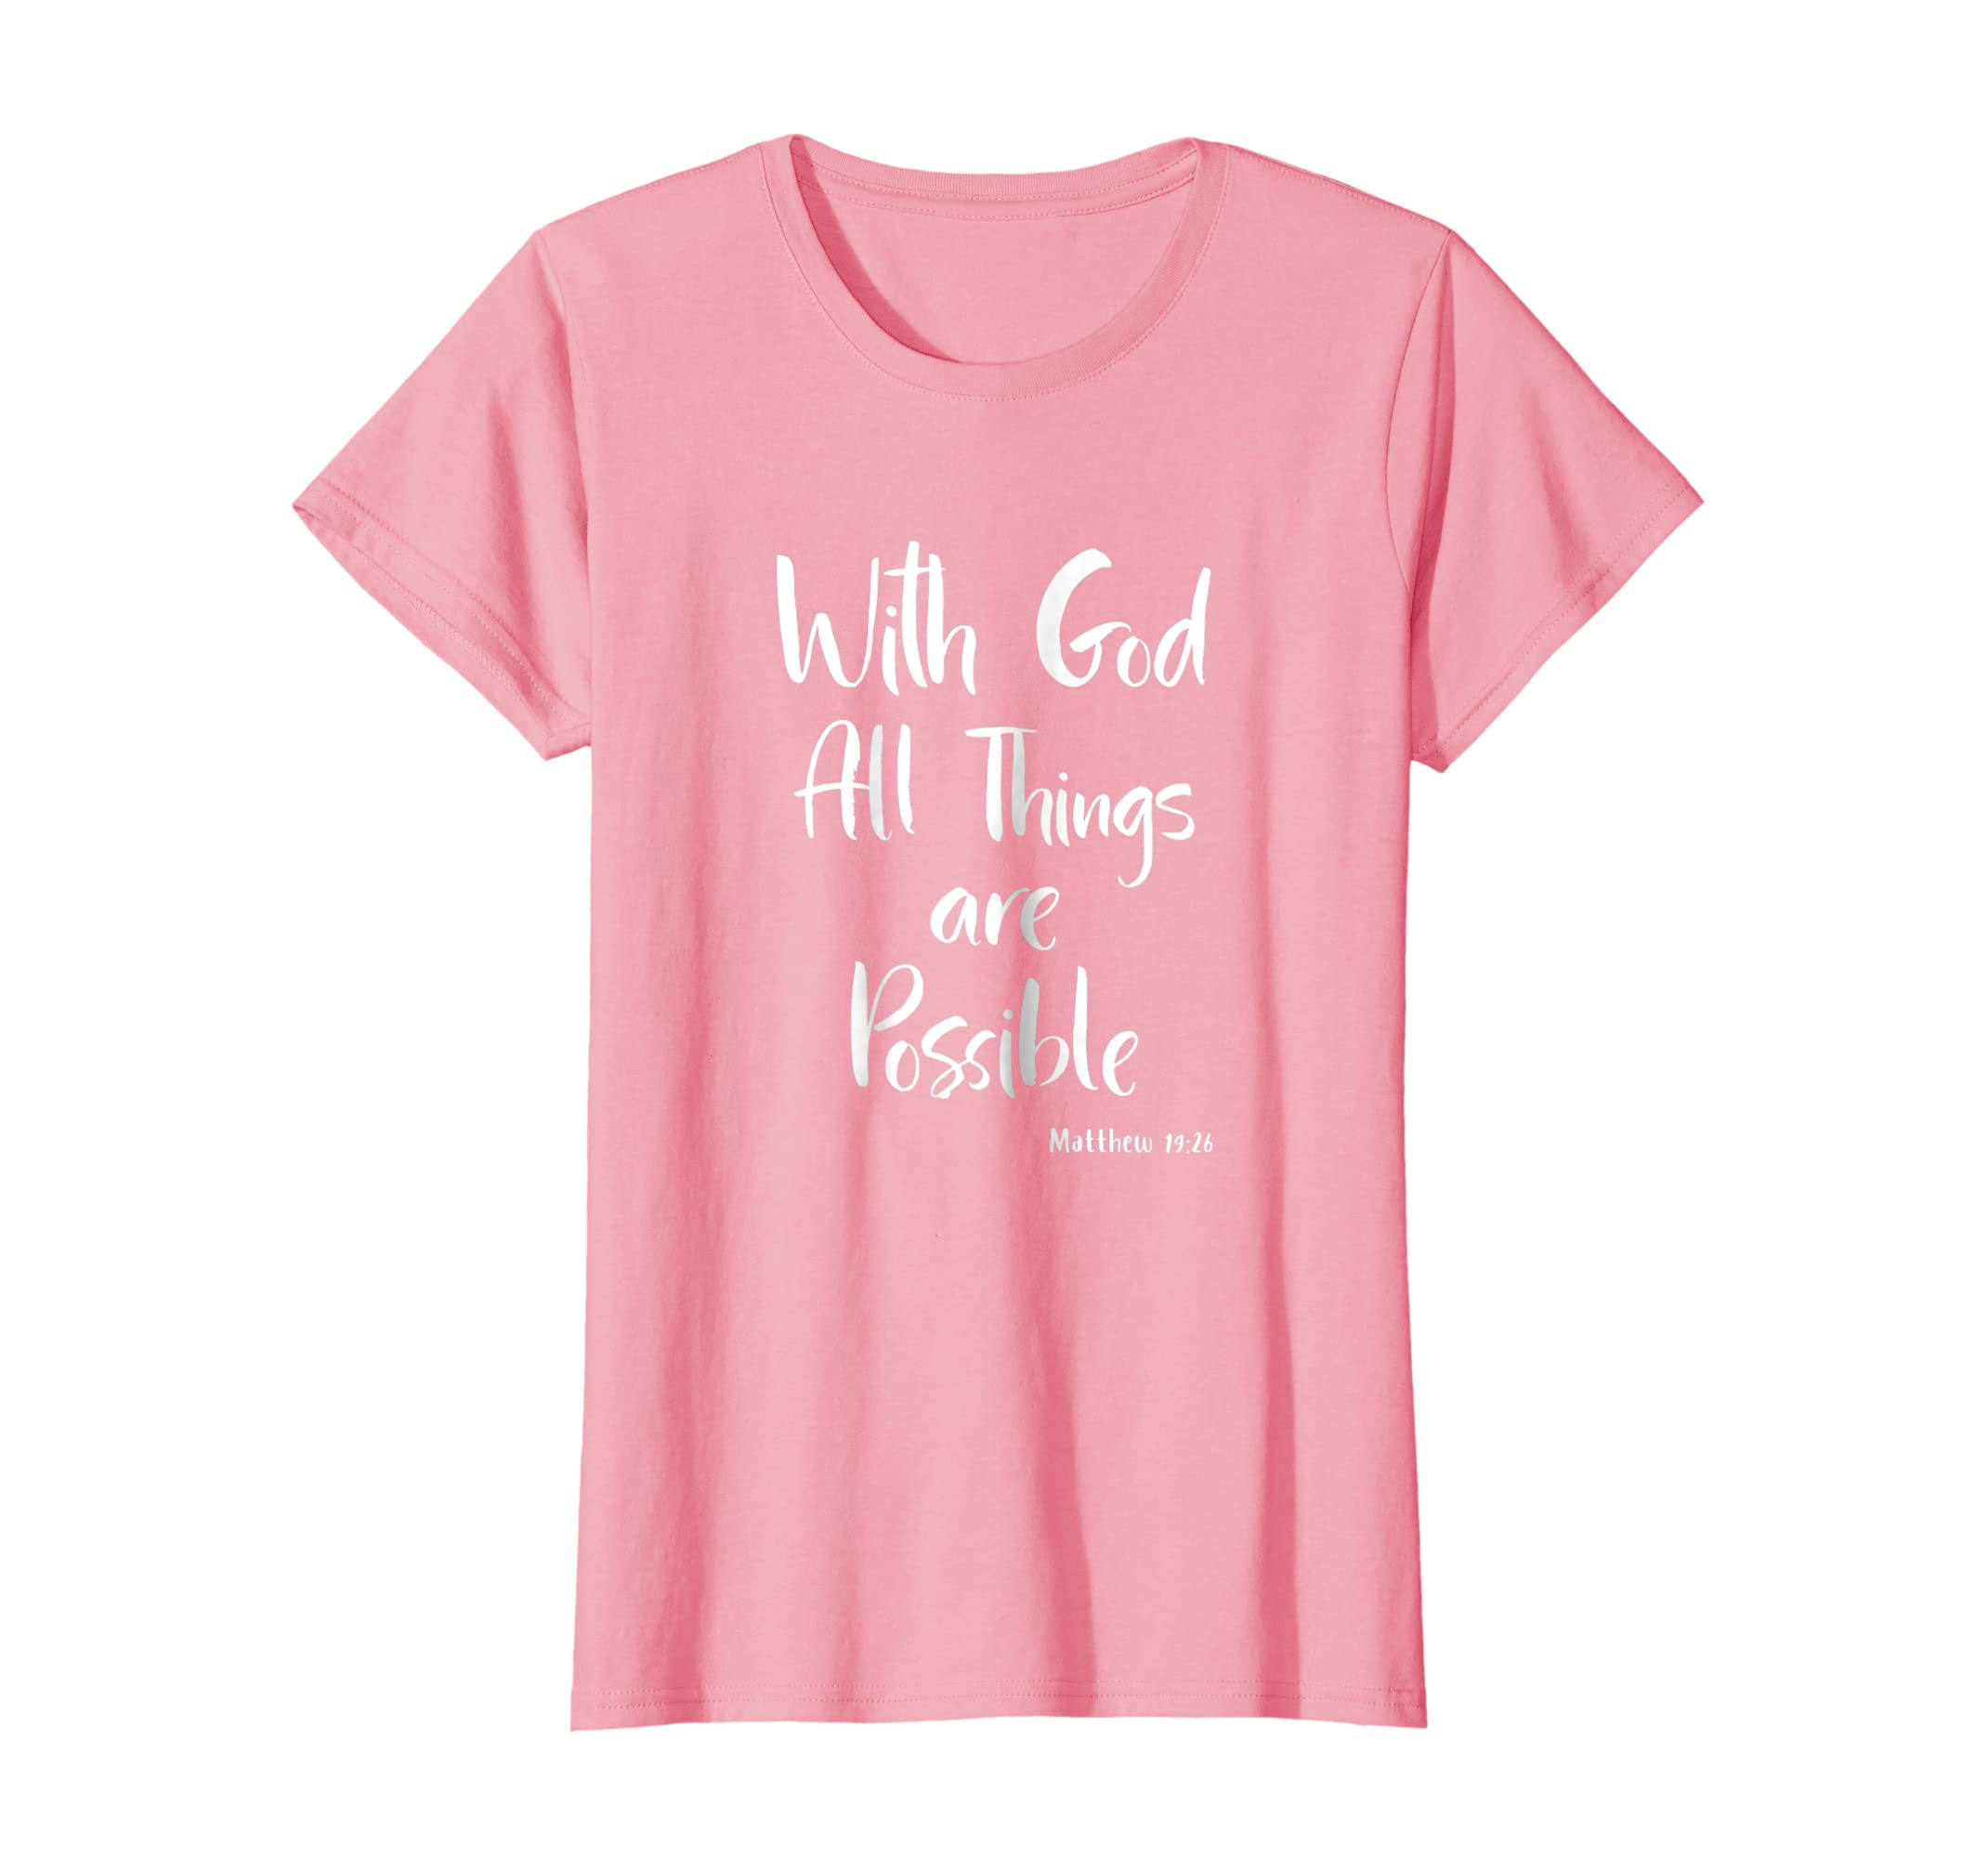 ba7dc8a61 Amazon.com: Faith Based t Shirts with Bible Verse Sayings for Ladies:  Clothing